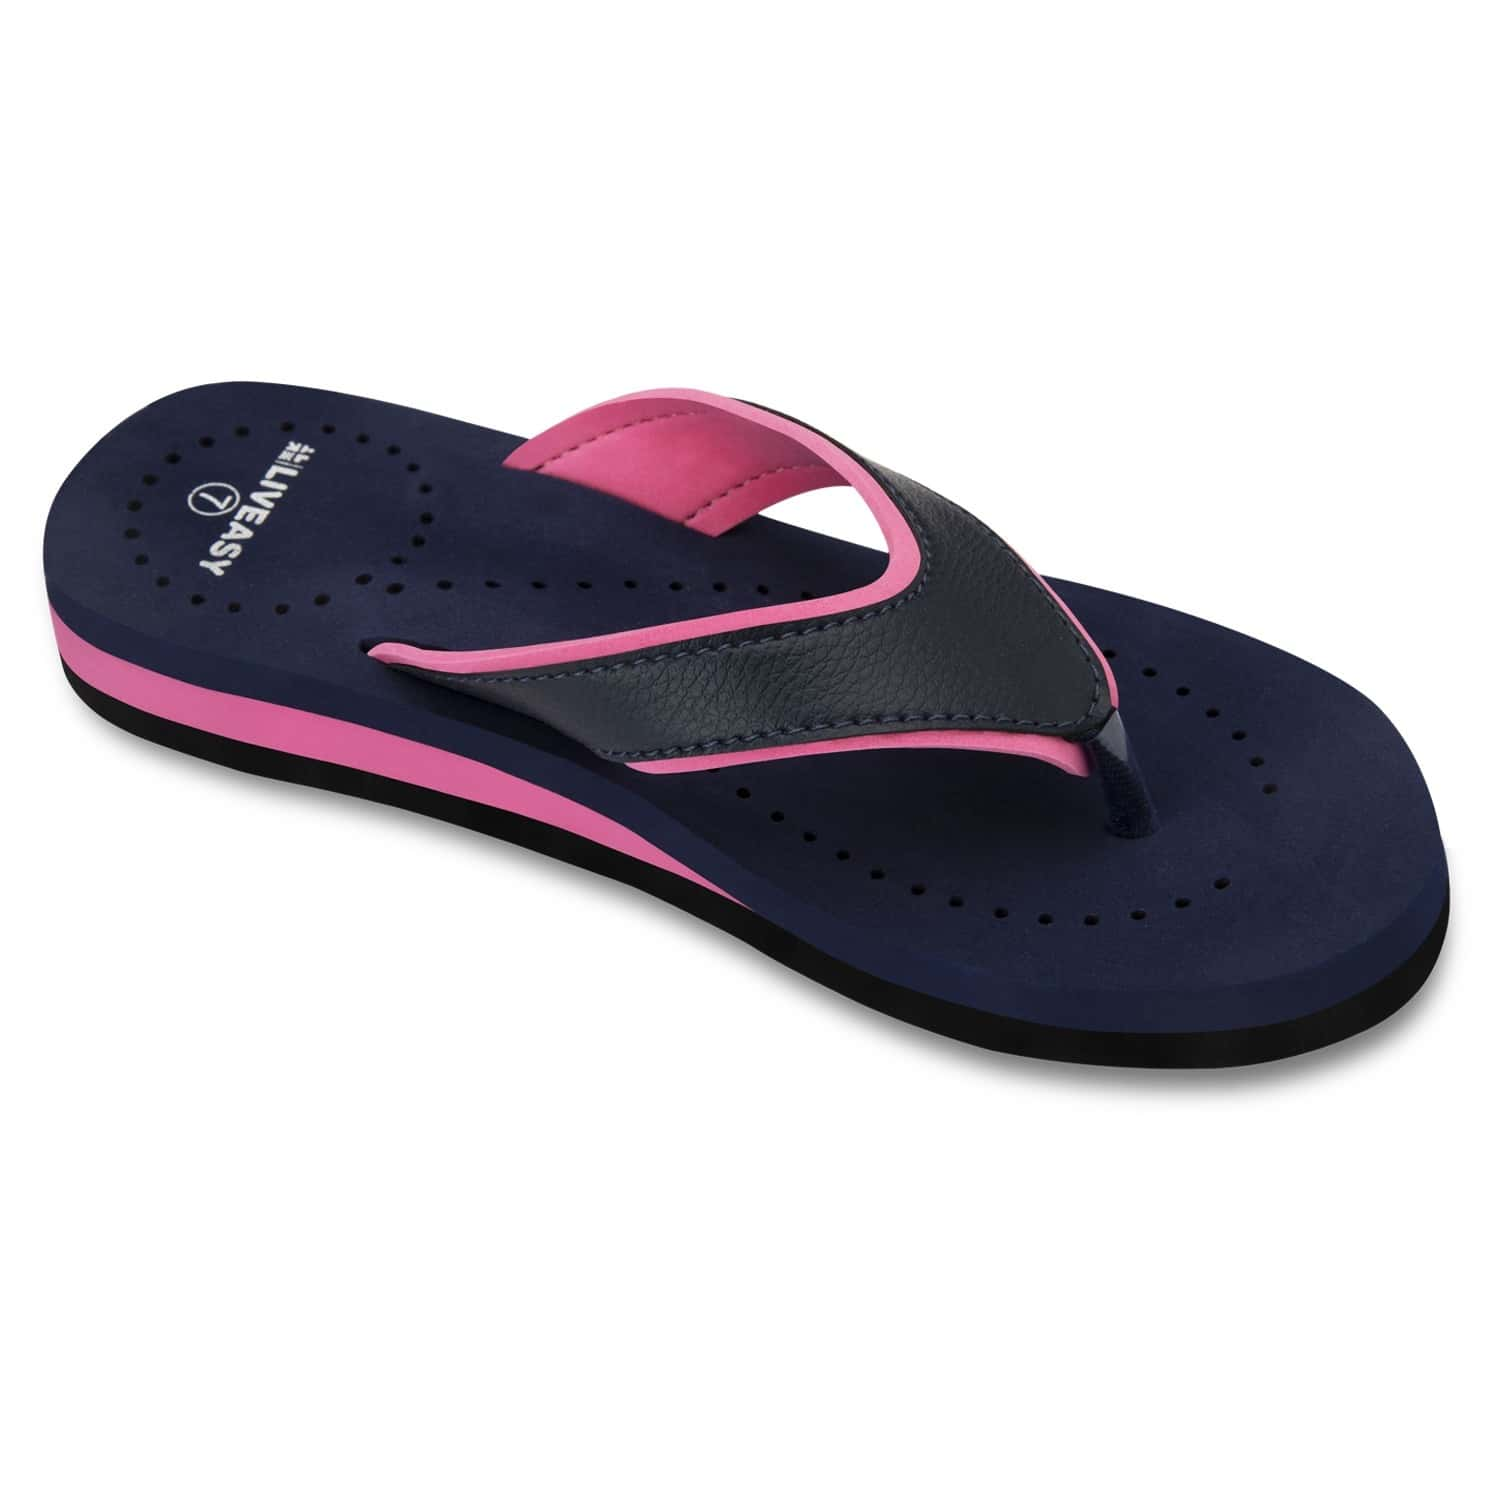 Liveasy Essentials Women's Diabetic & Orthopedic Slippers - Blue With Pink - Size Uk 5 / Us 8